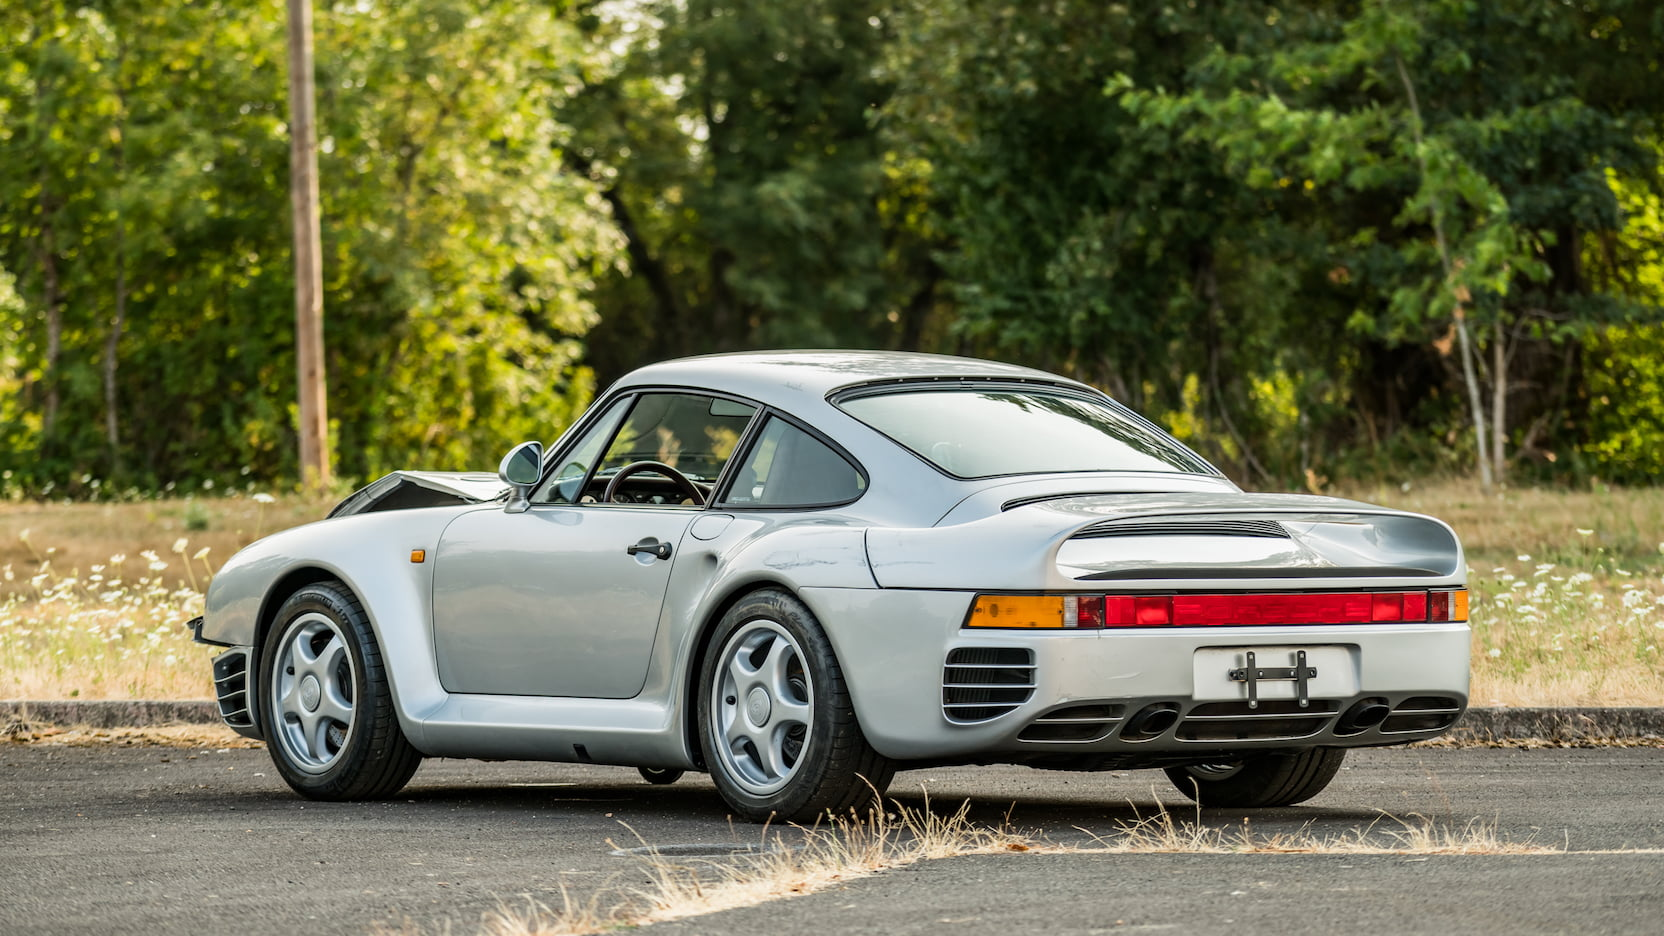 1987 Porsche 959 With Damaged Front End Heads To Auction